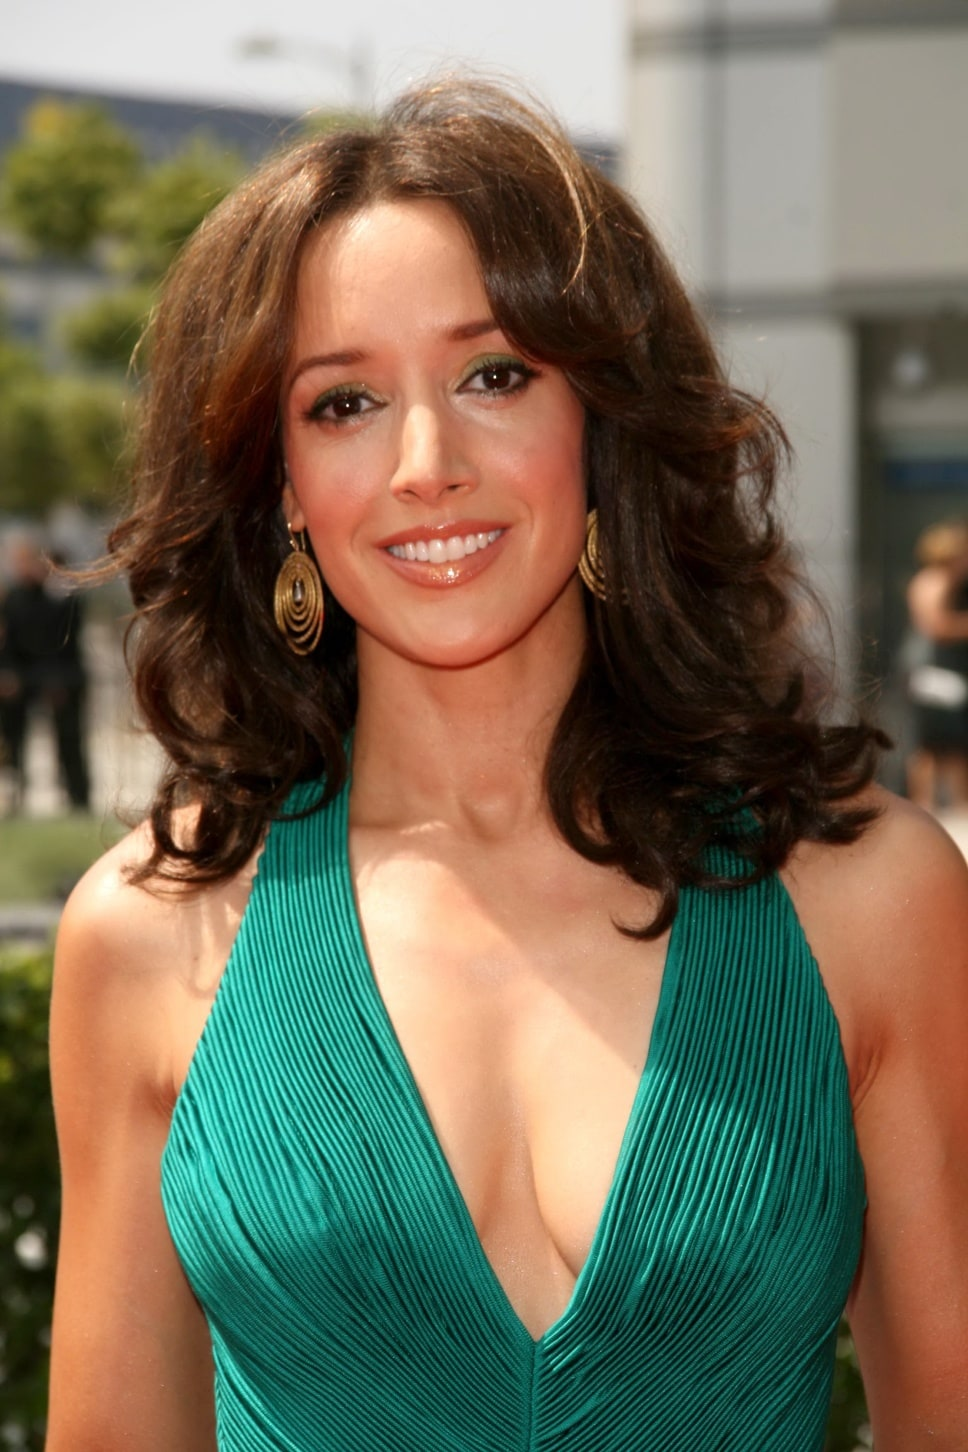 968full Jennifer Beals Jpg